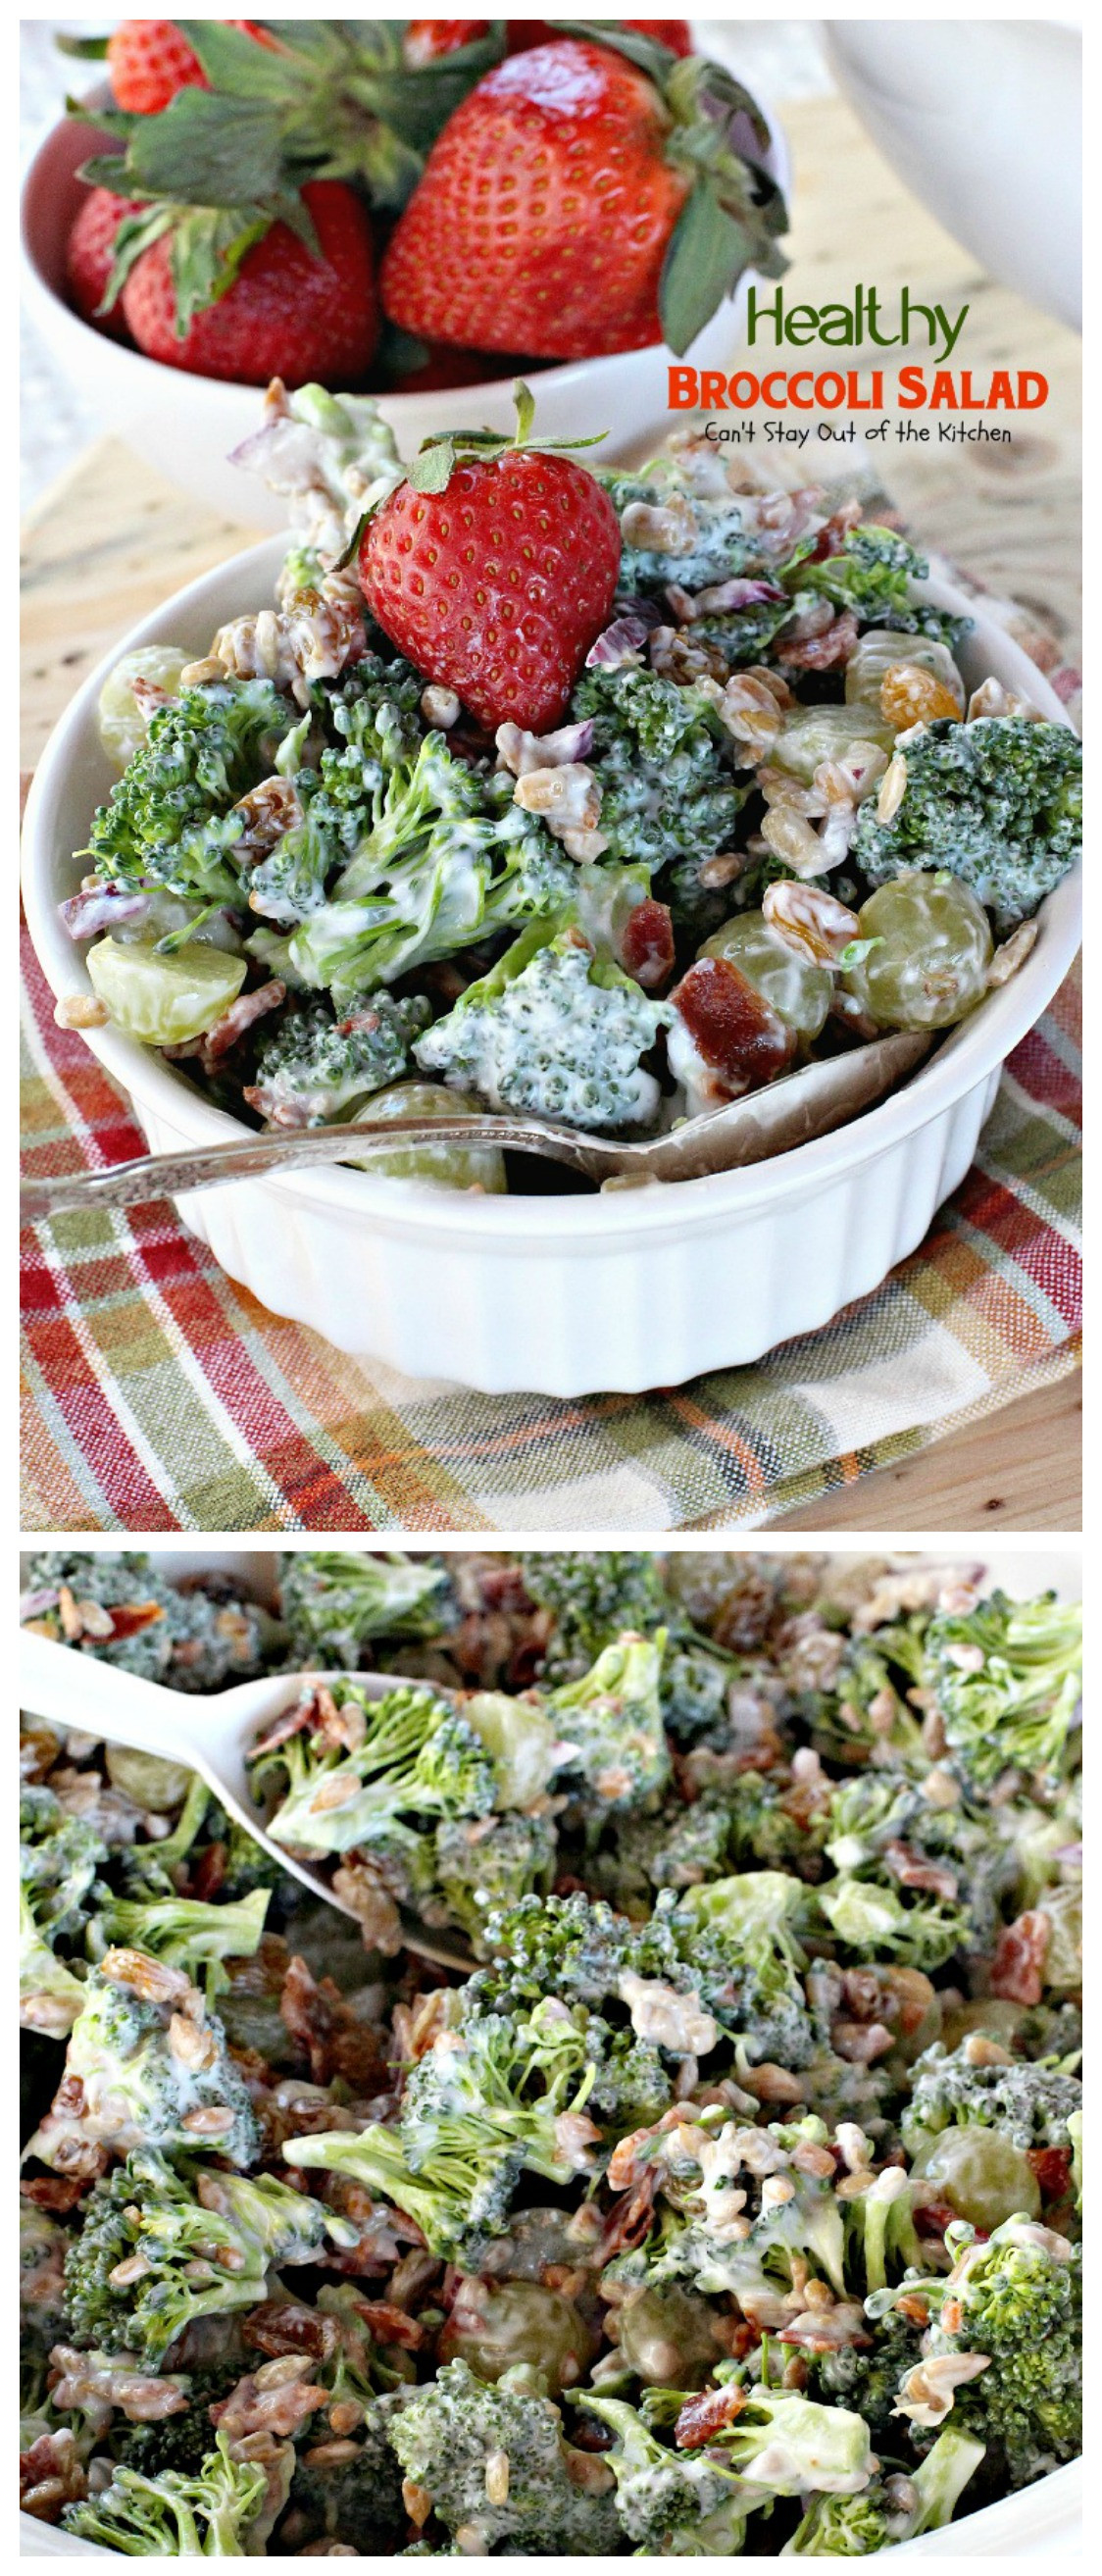 Broccoli Salad Healthy  Broccoli Apple Salad Can t Stay Out of the Kitchen